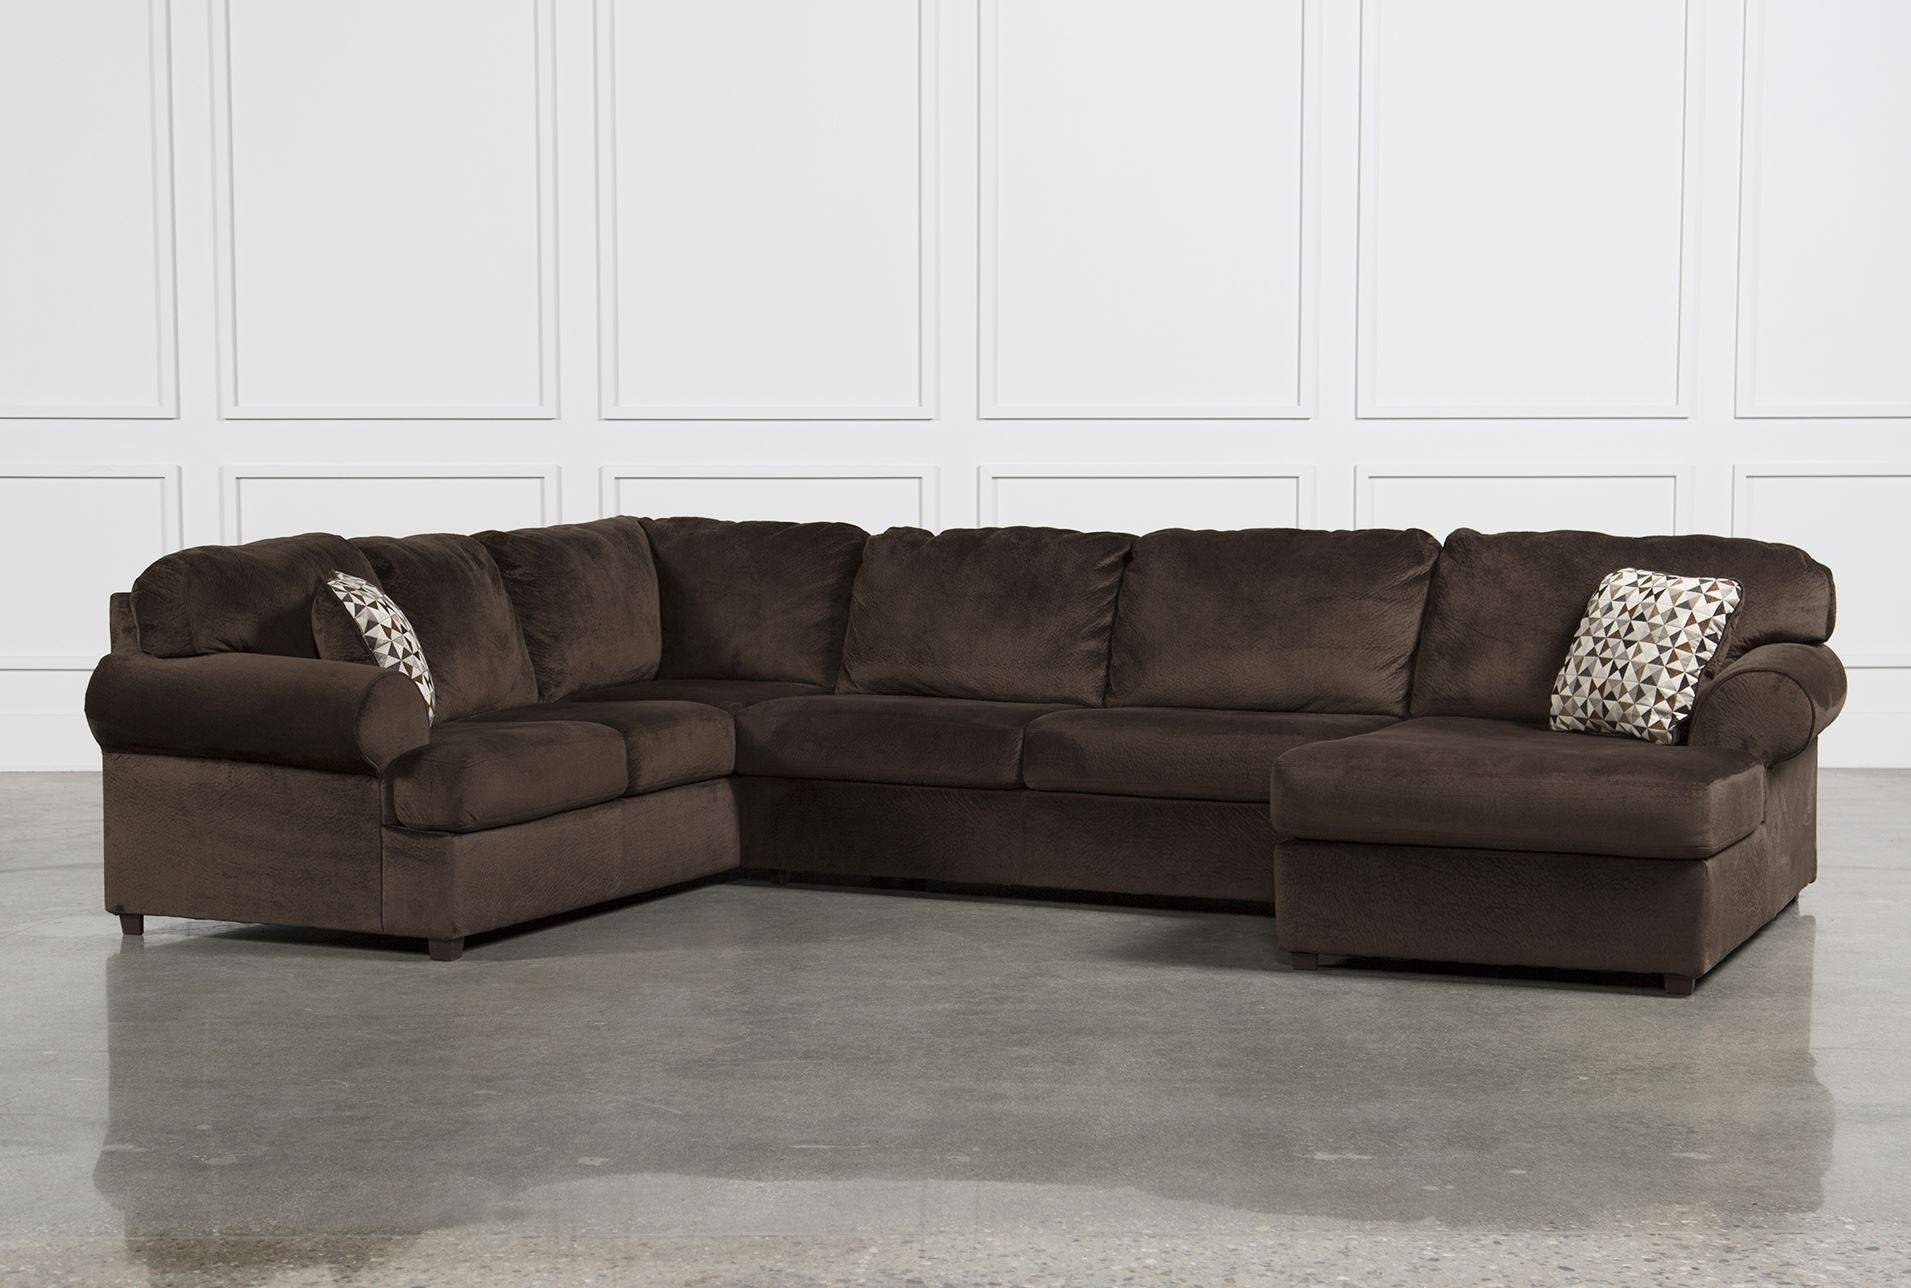 Furniture: Wonderful Leather Sectional Sofas Collections For Home in 6 Piece Sectional Sofas Couches (Image 9 of 15)